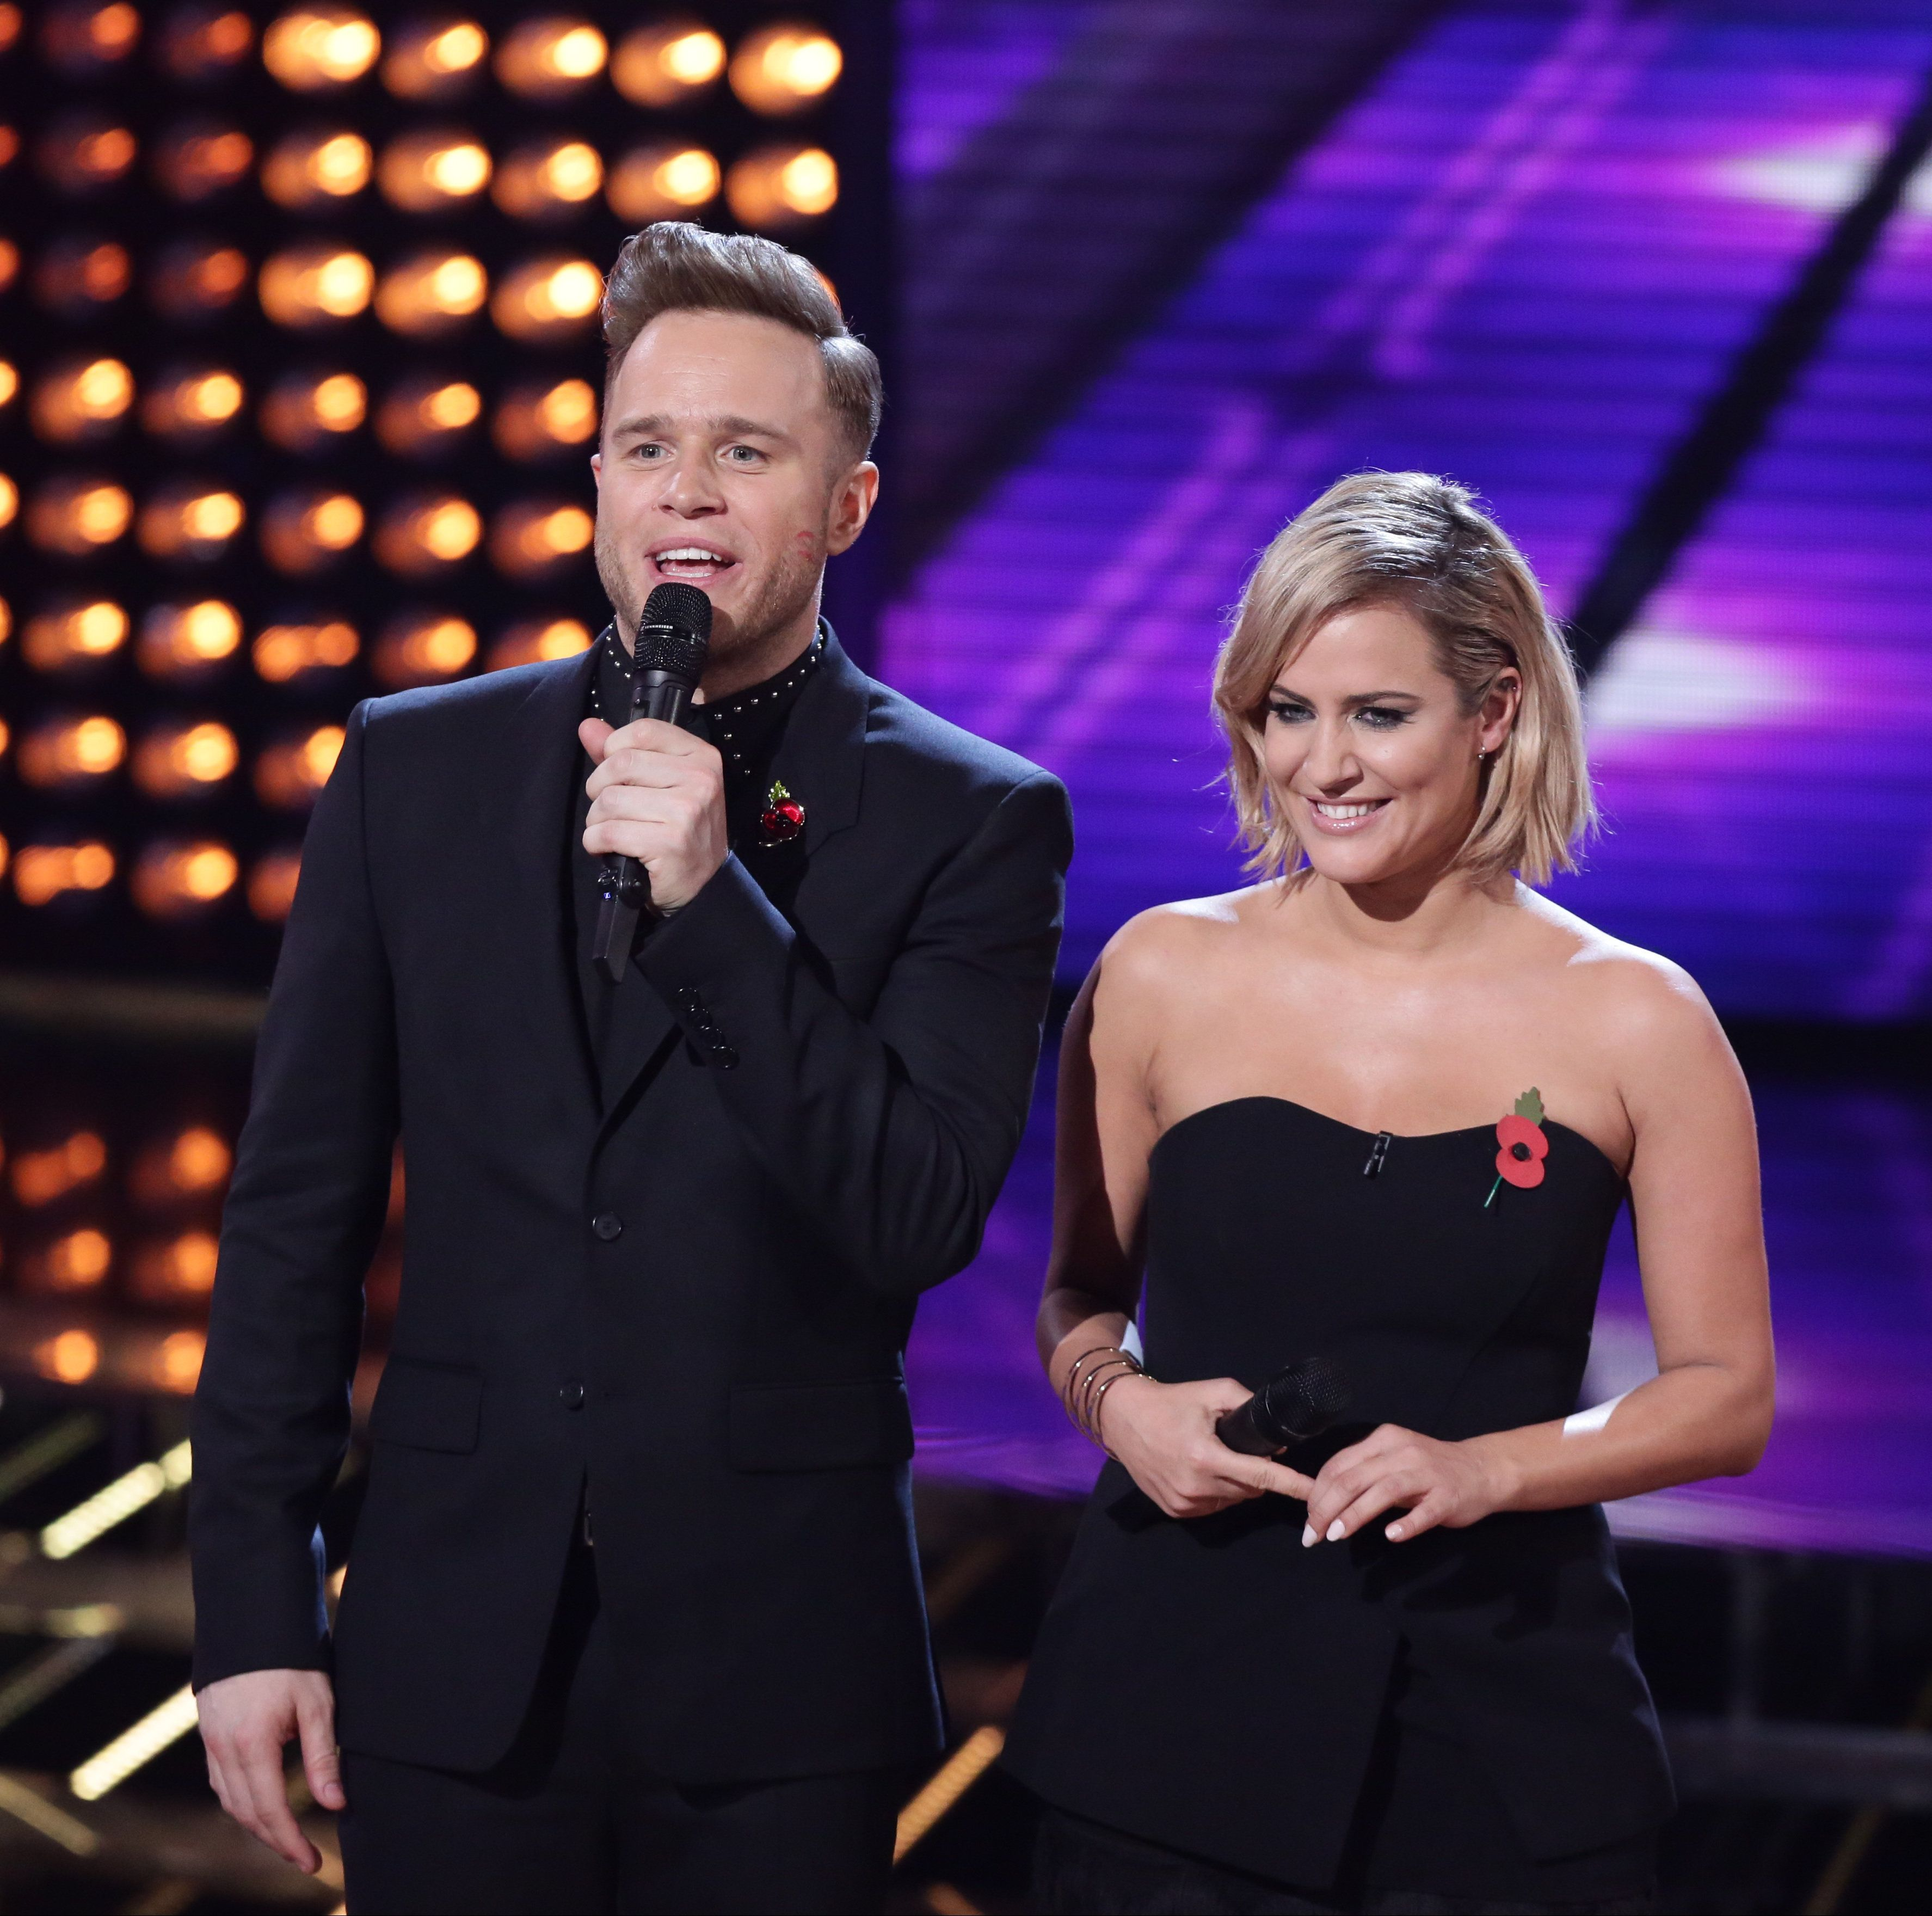 Olly Murs hosted 'The X Factor' with Caroline Flack in